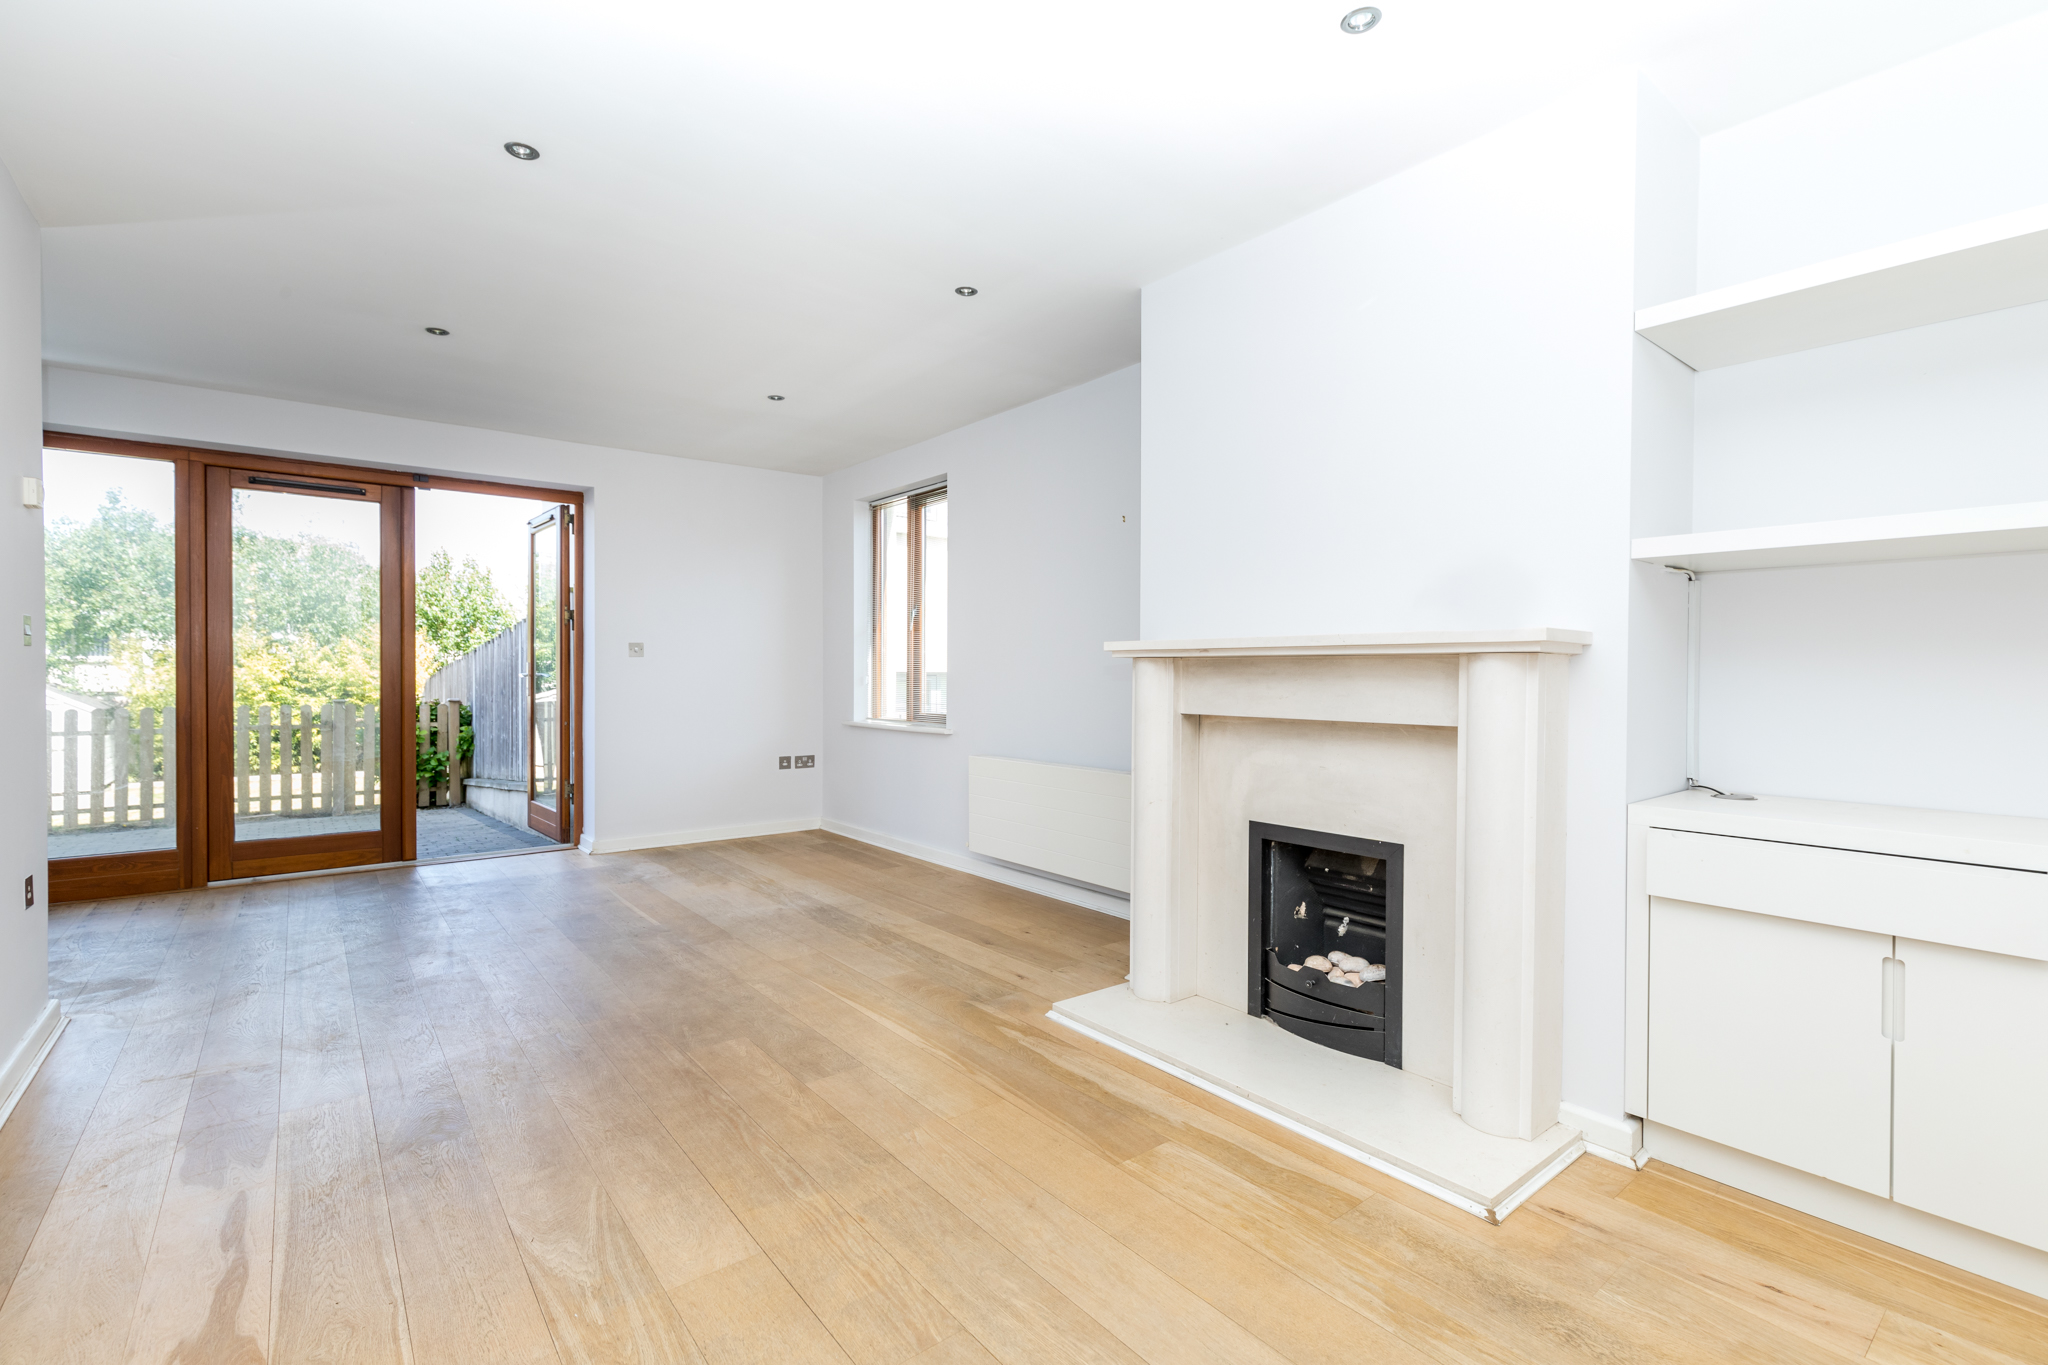 39 The Walk, Robswall, Malahide, Dublin